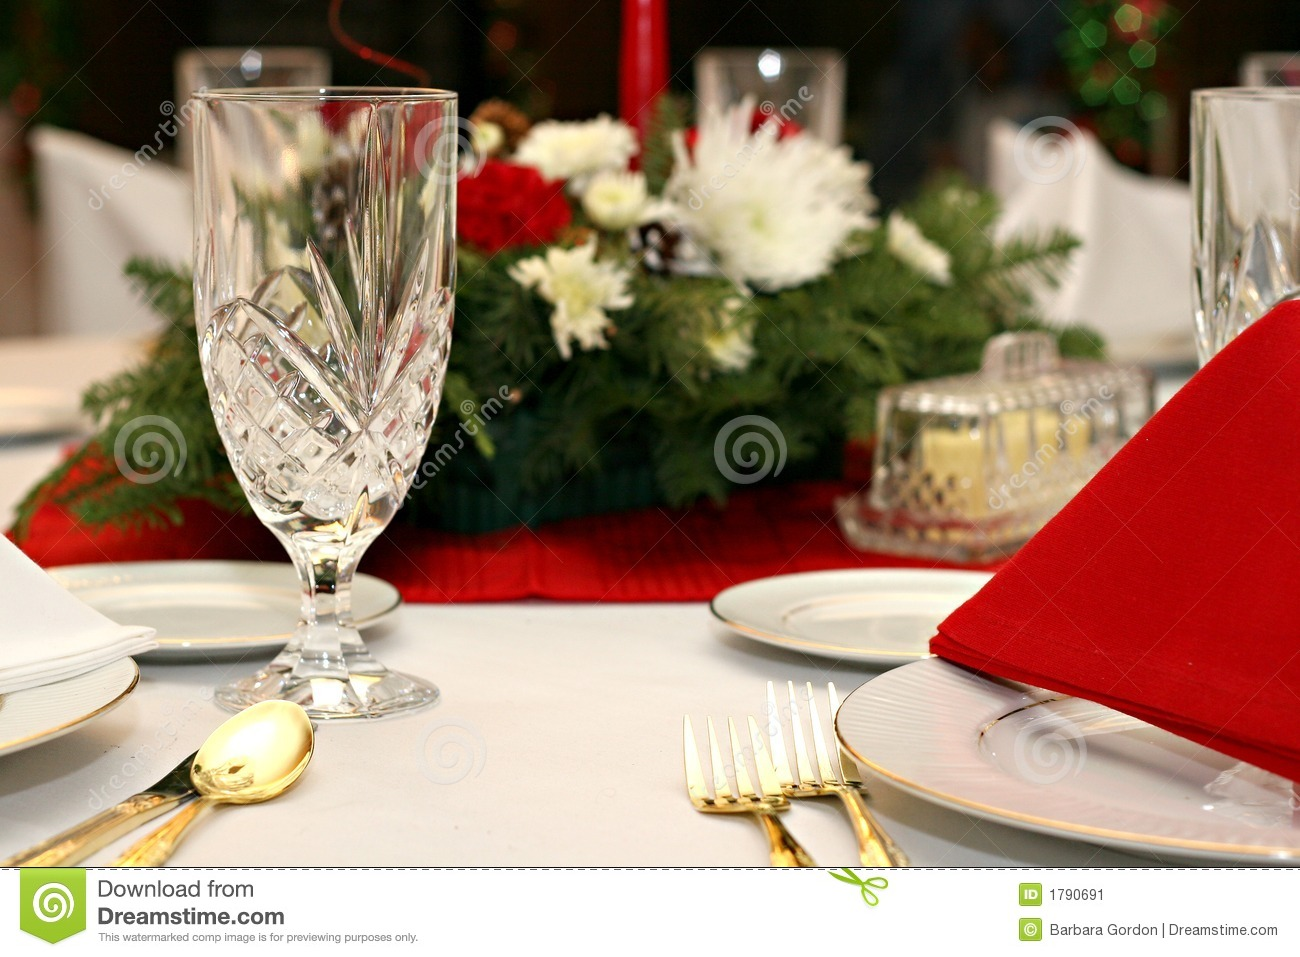 Red White Gold Table Setting & Red White Gold Table Setting Stock Image - Image of chrysanthemum ...